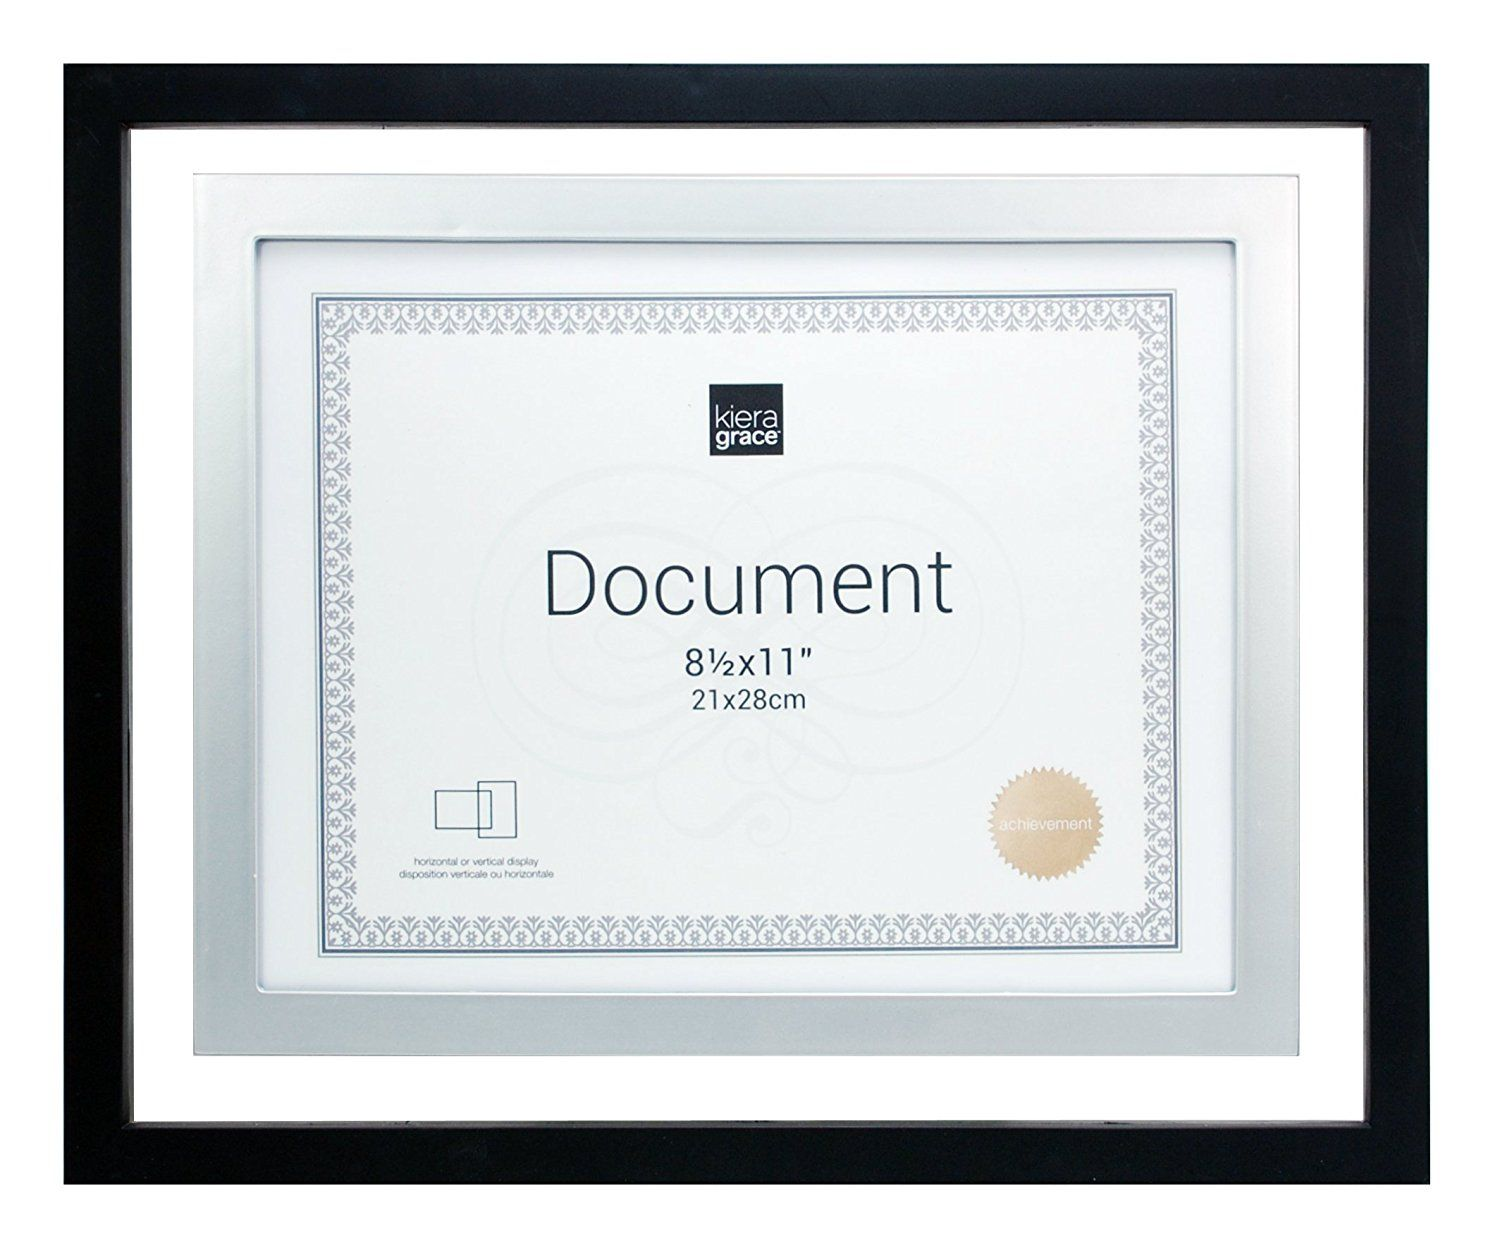 Kiera grace city document float frame 11 by 14 inch matted for explore picture frame sets find picture and more jeuxipadfo Images